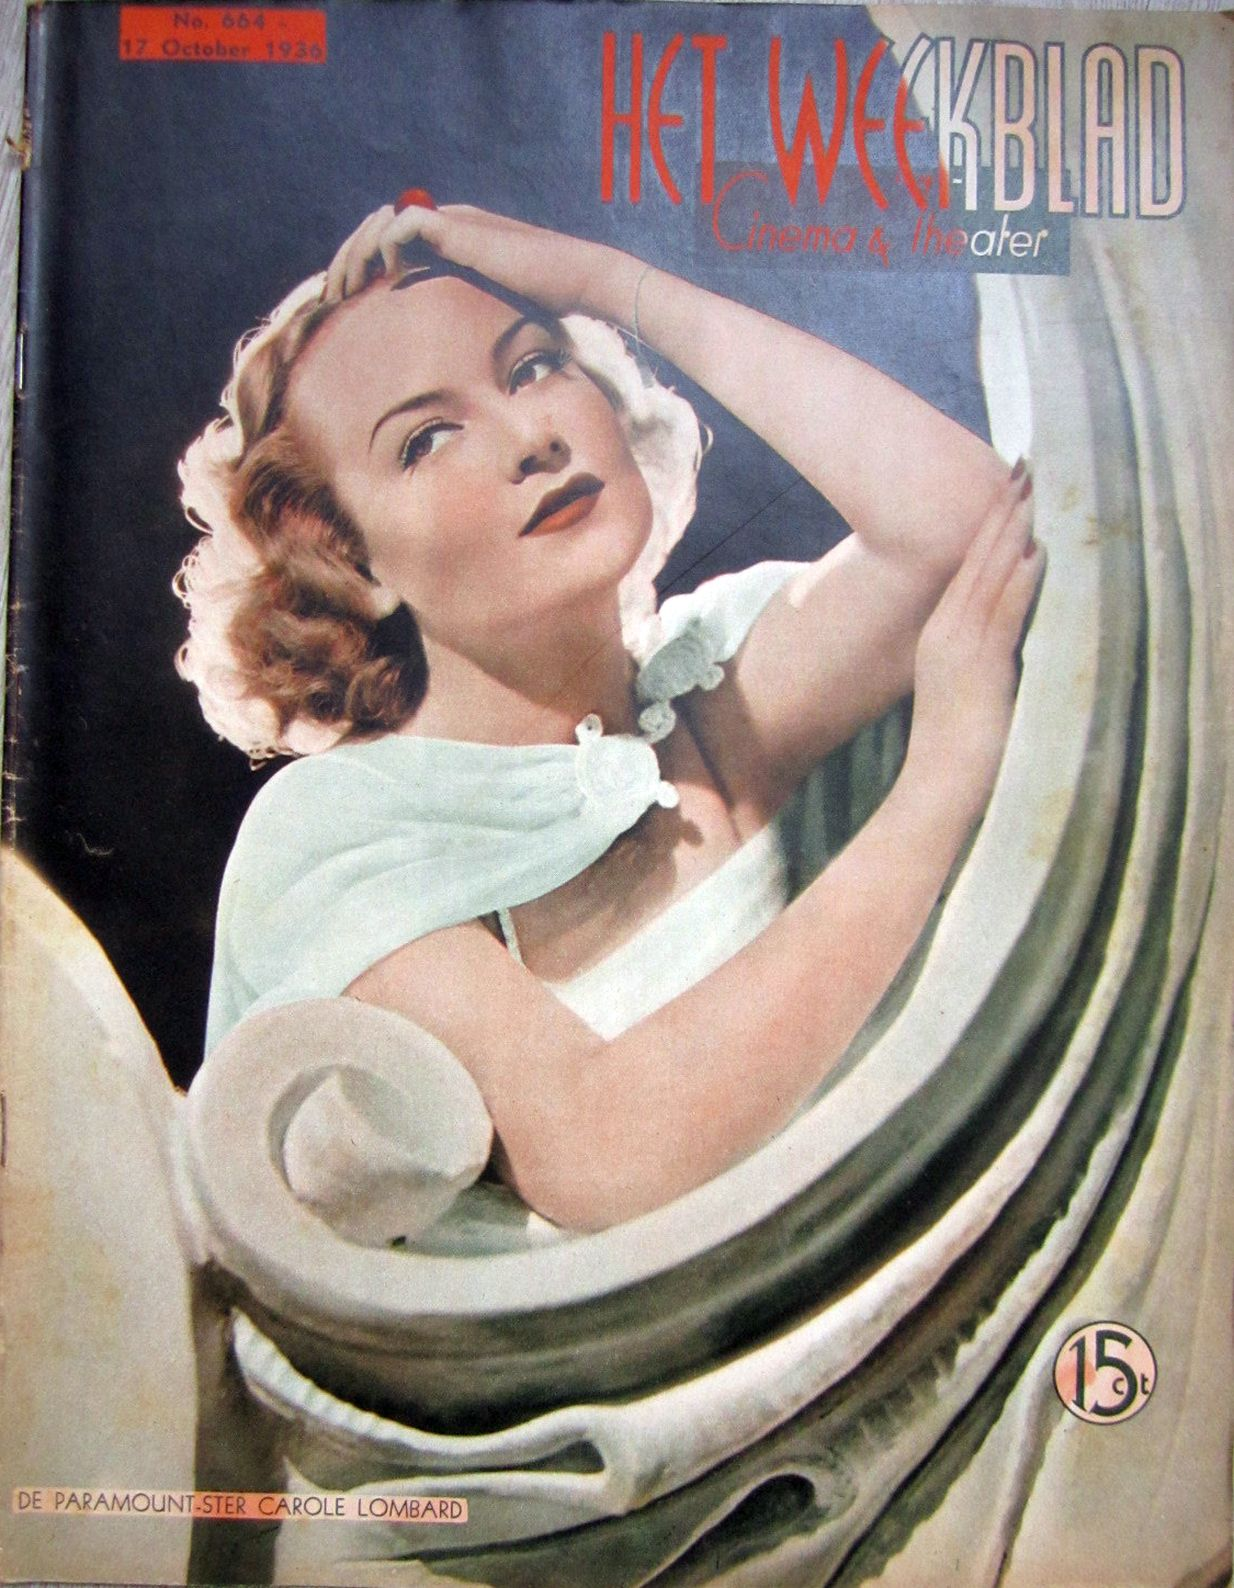 carole lombard cinema & theater 101736a cover